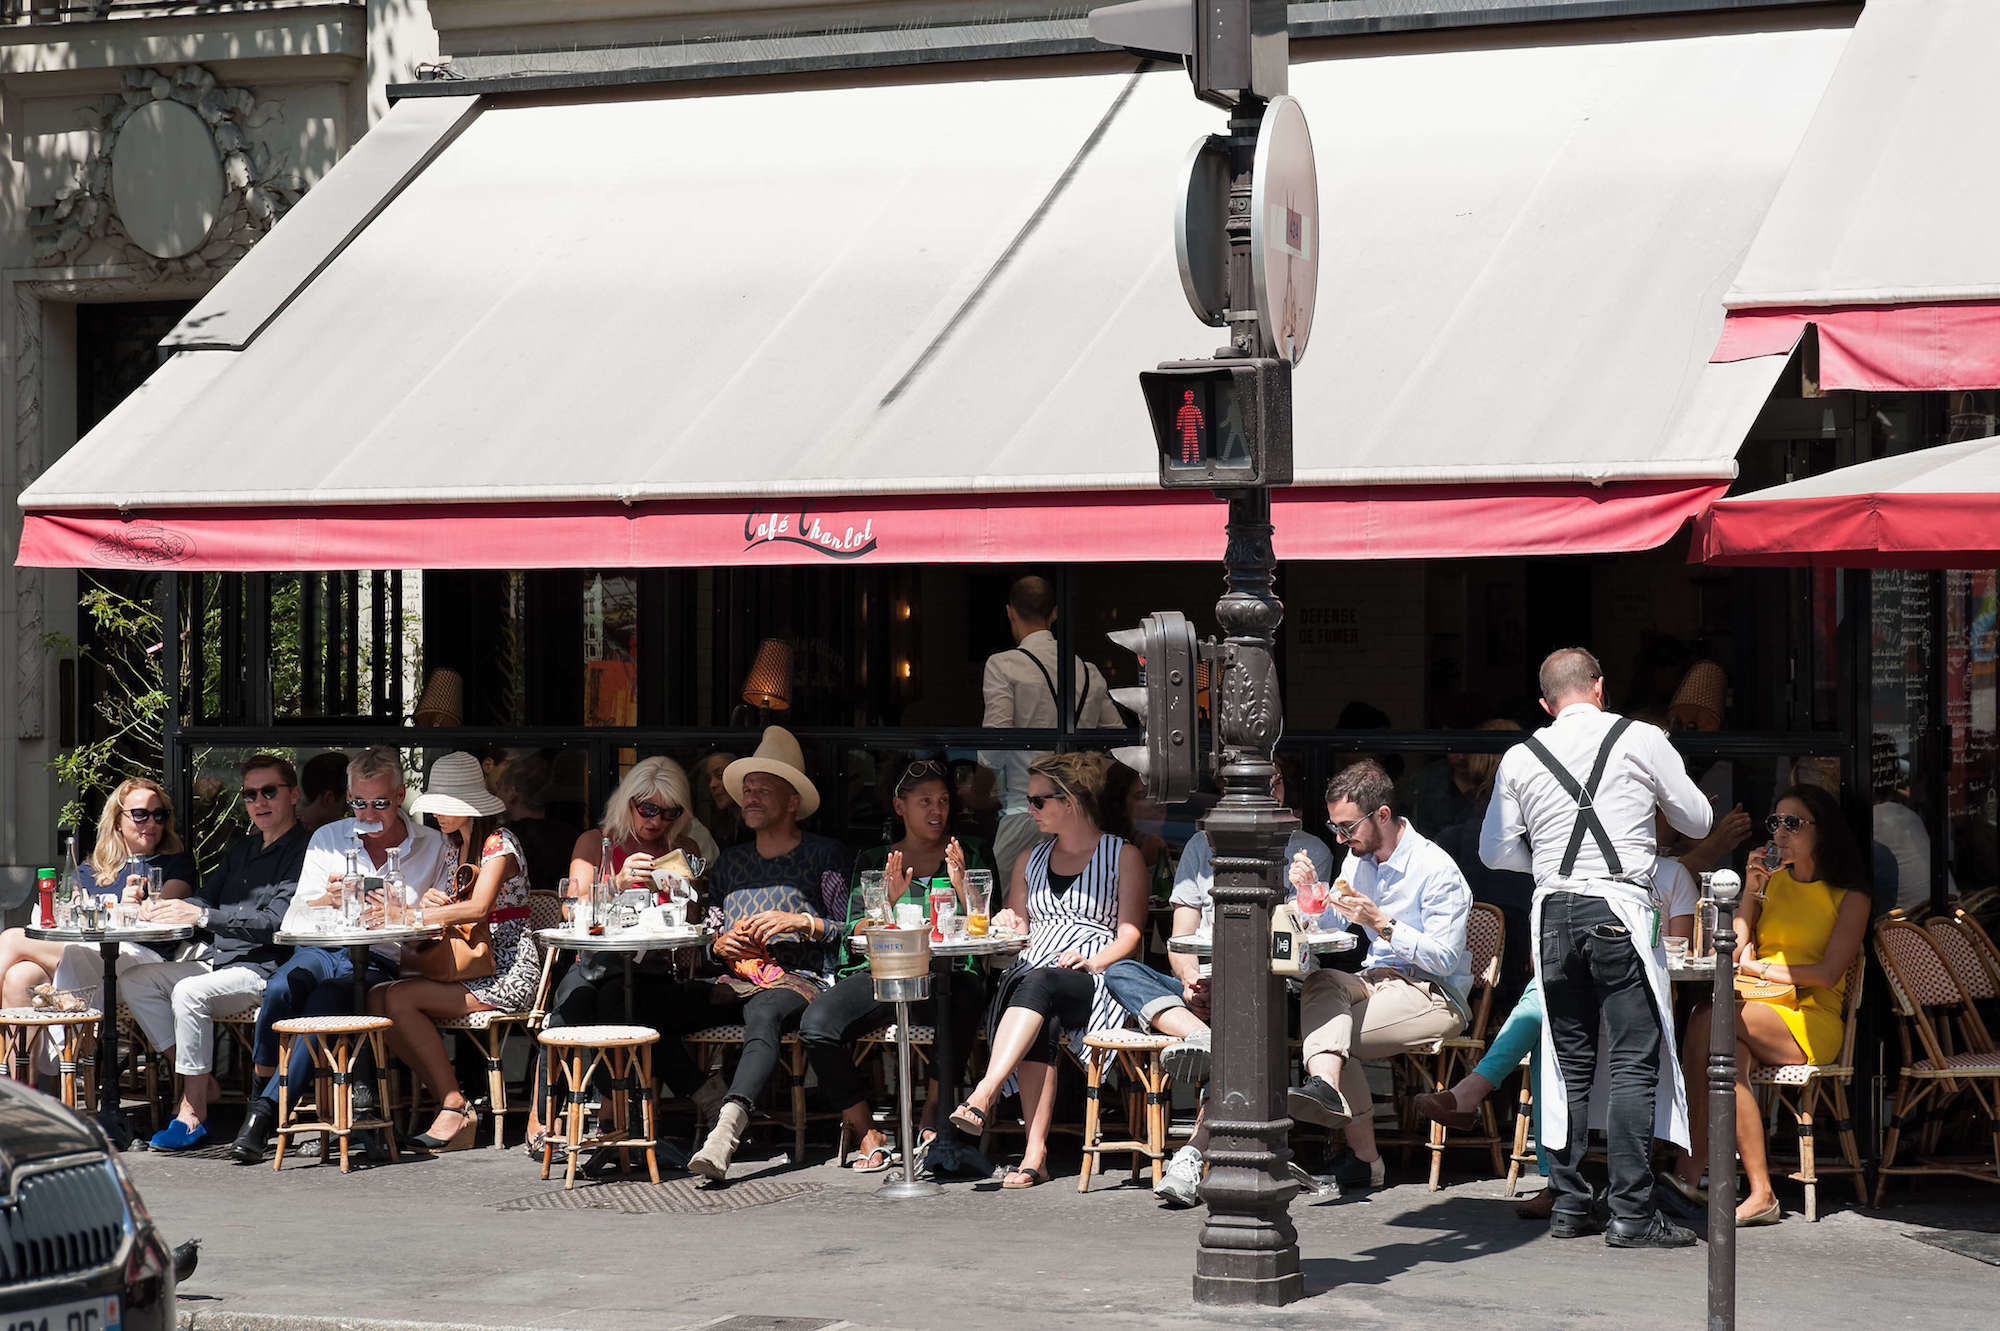 HiP Paris Blog tells the story of la rentrée when everyone is back from the summer holidays and Paris cafe terraces are jam-packed once again.